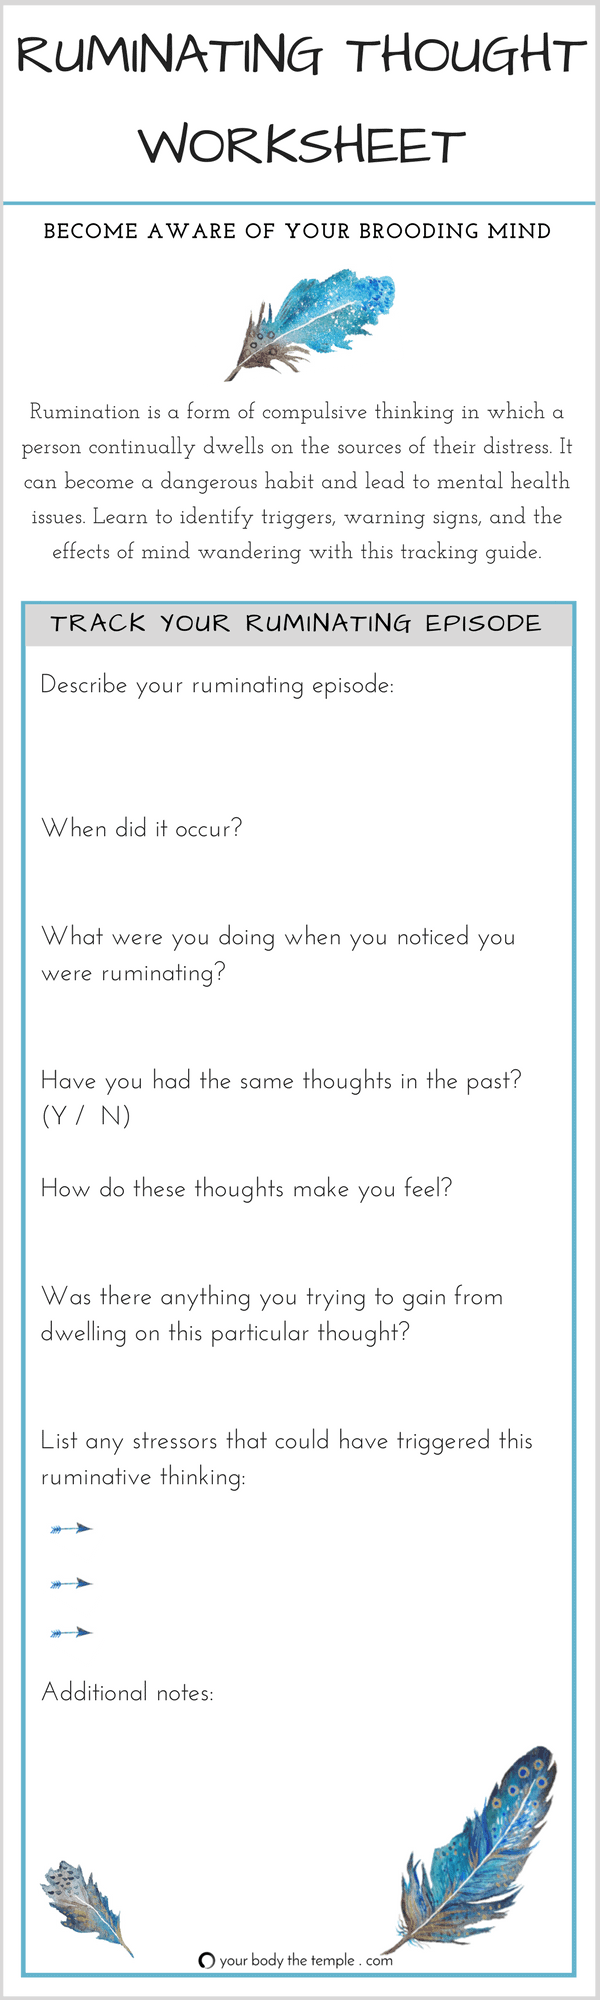 ruminating thought worksheet